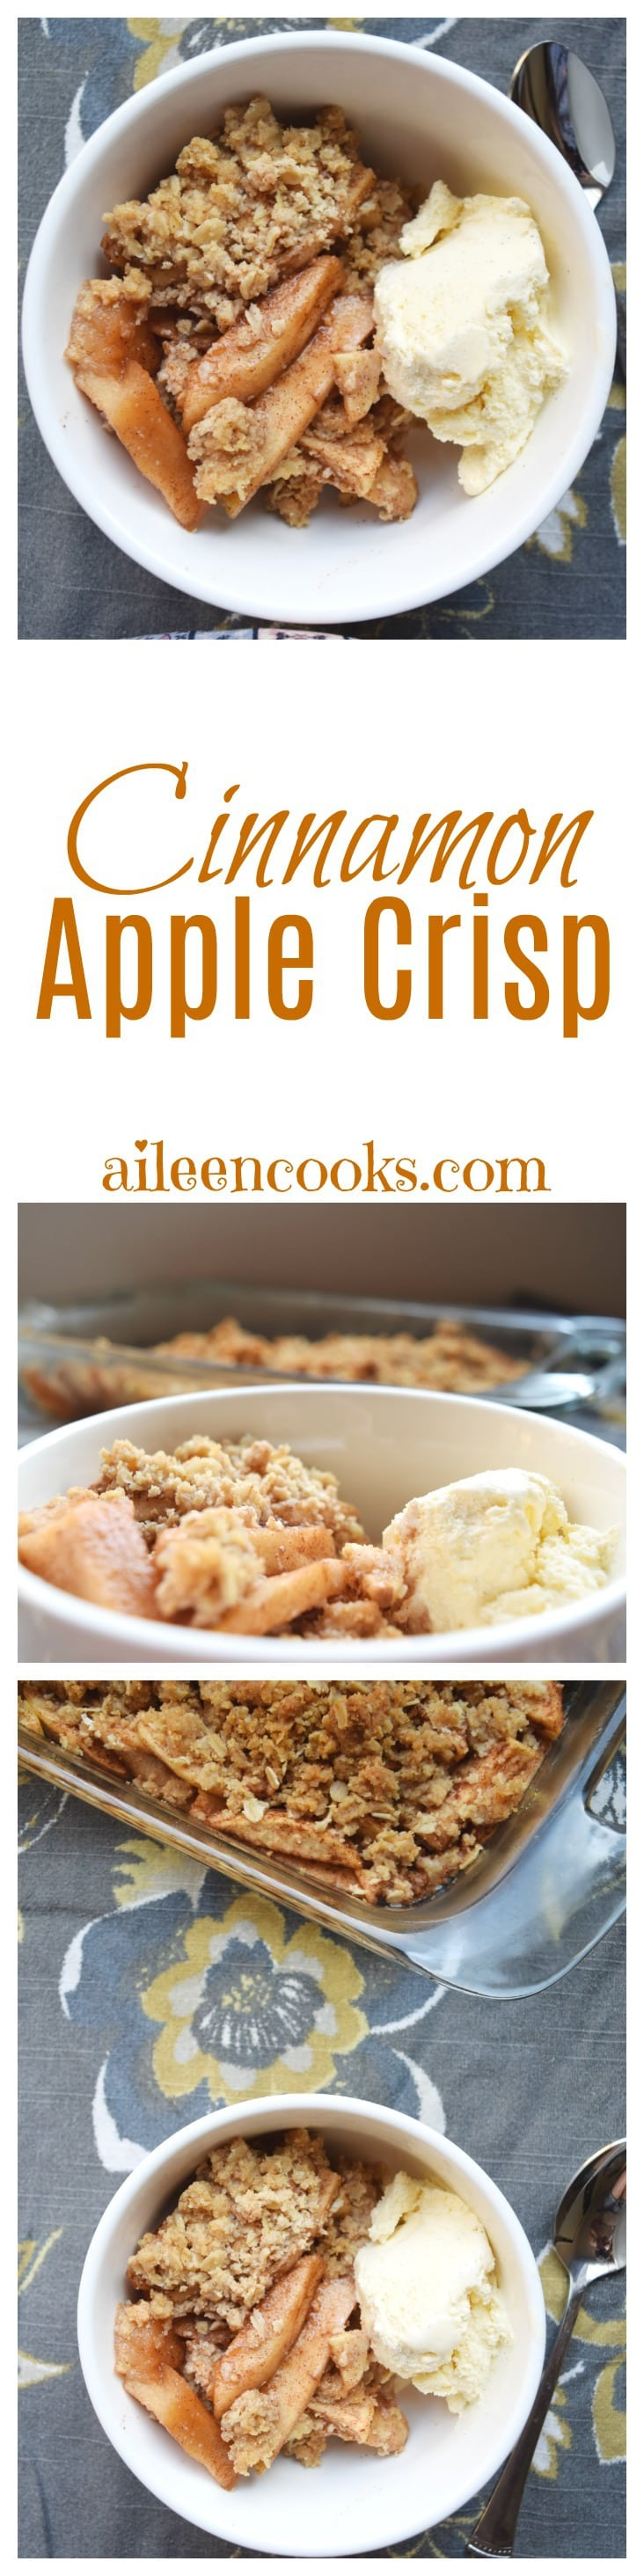 Make this Cinnamon Apple Crisp and celebrate fall's favorite fruit! You can also find recipes for cobbler, apple cinnamon rolls, baked oatmeal with apples, and more on aileencooks.com!